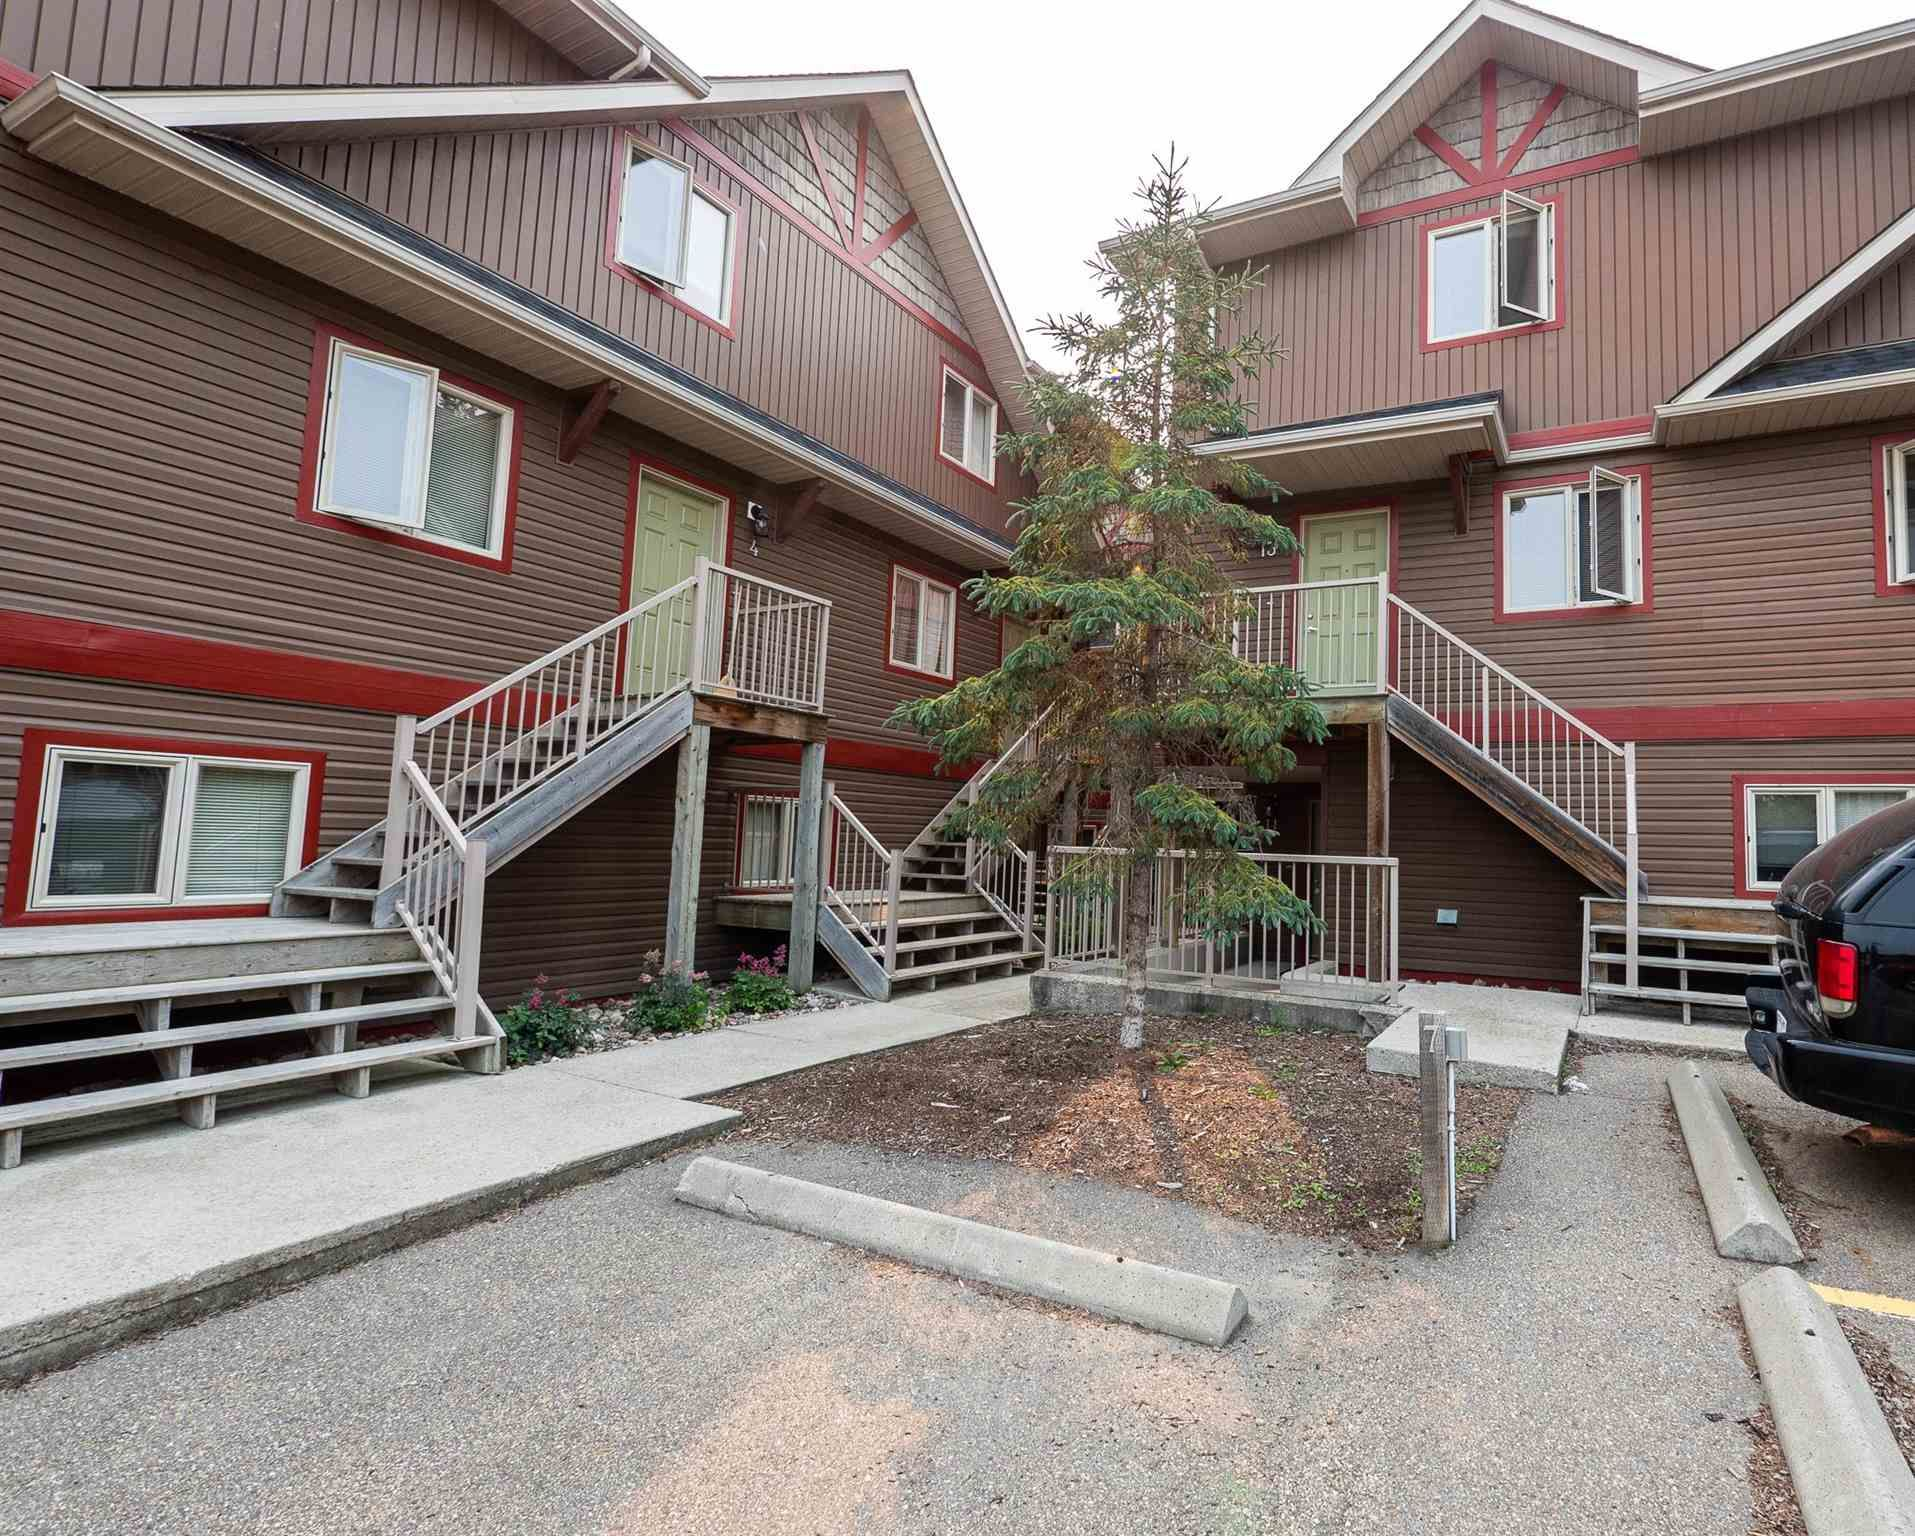 Main Photo: 13 33 Heron Point: Rural Wetaskiwin County Townhouse for sale : MLS®# E4204960